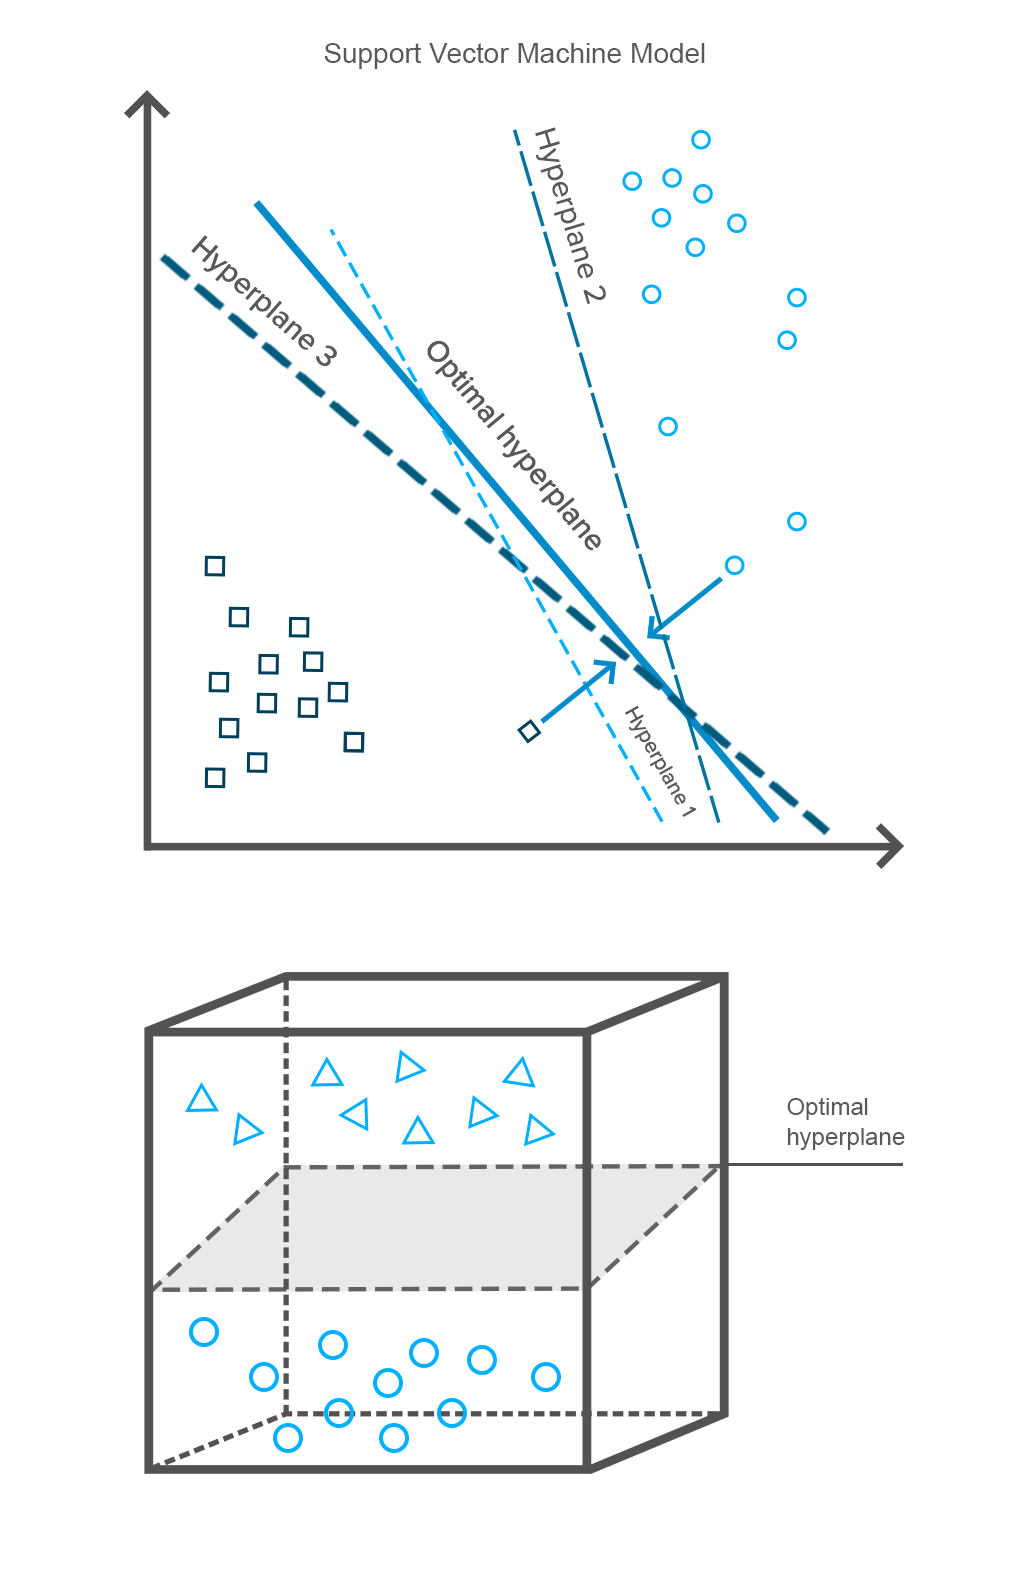 Support Vector Machine Model